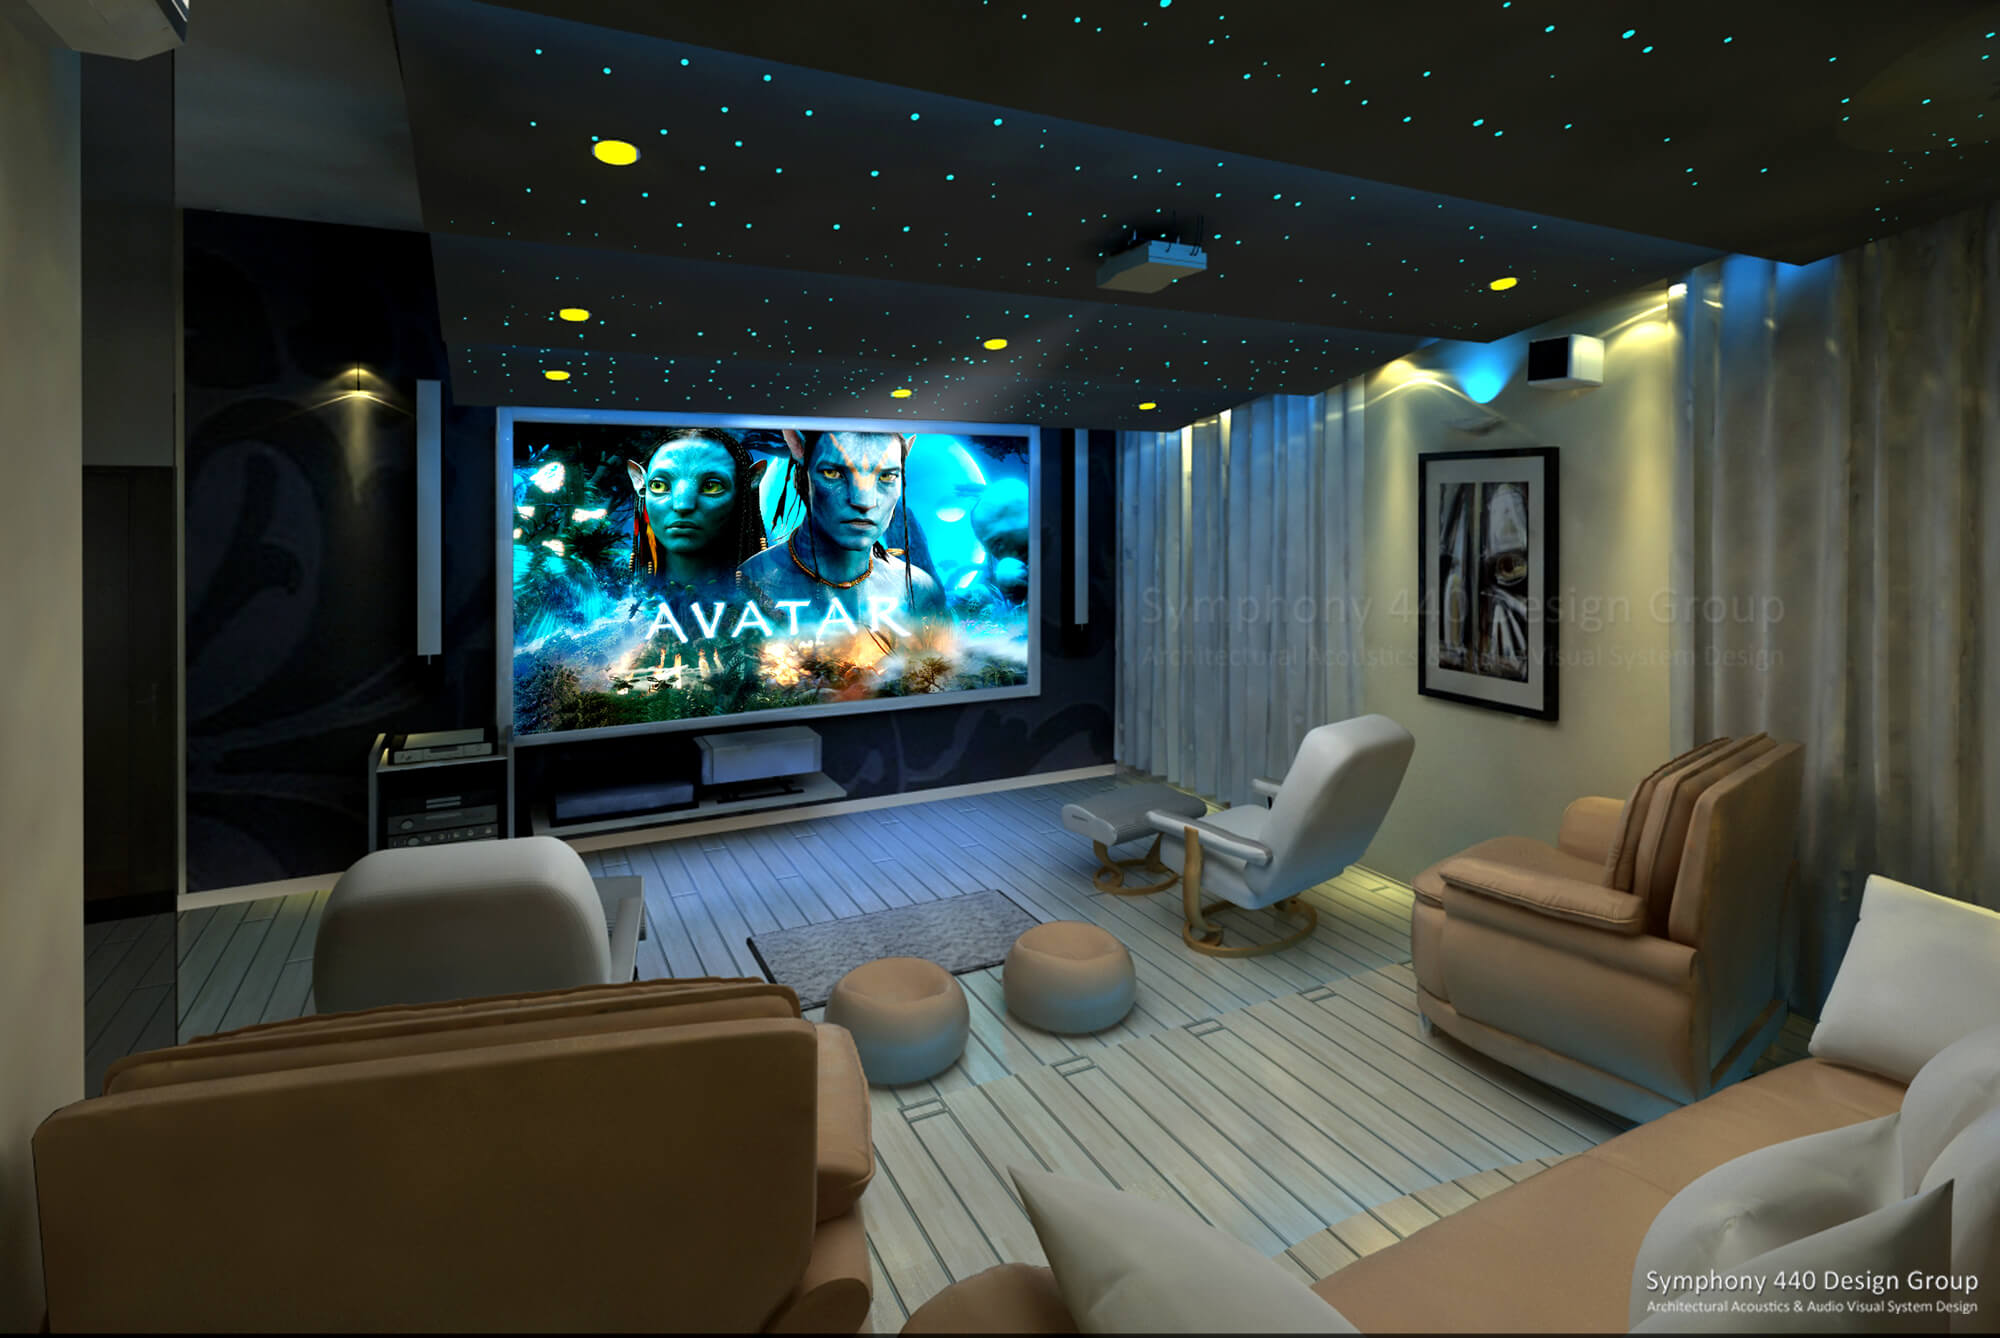 Home Theater Chikmagalurkarnataka. Symphony 440 DG | Architectural Acoustic  U0026 Audio Visual System Design